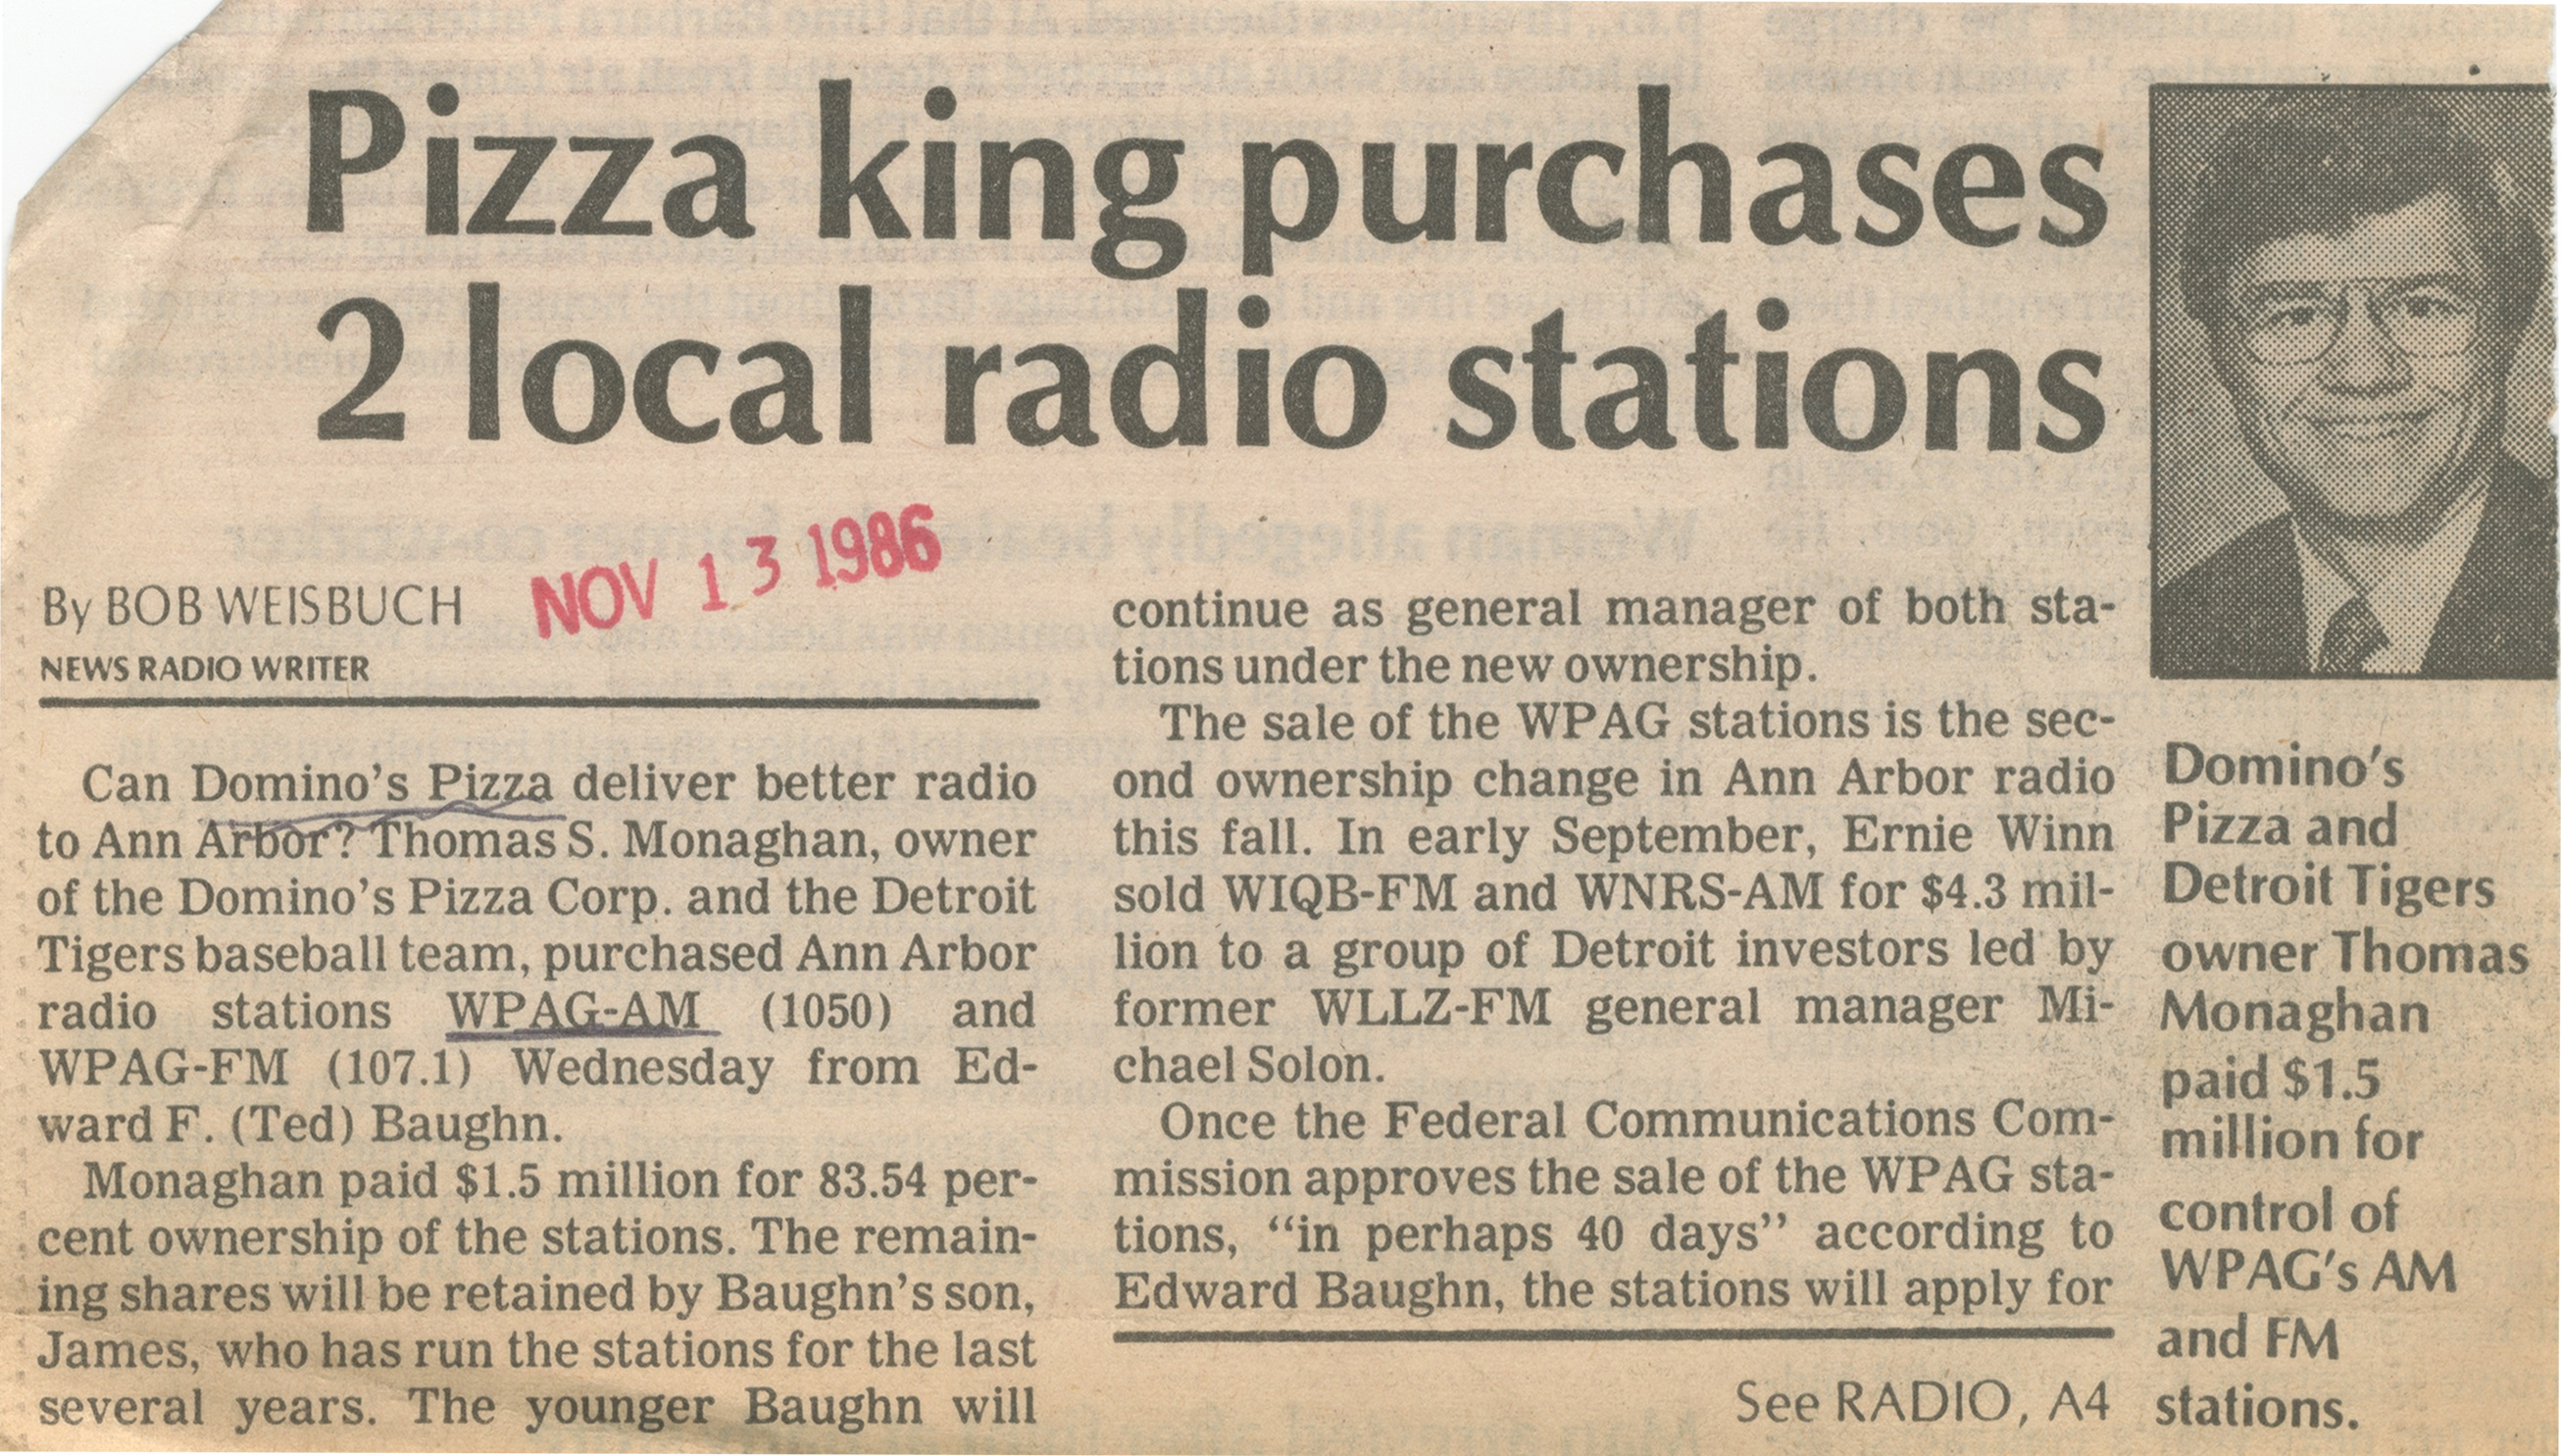 Pizza King Purchases 2 Local Radio Stations image